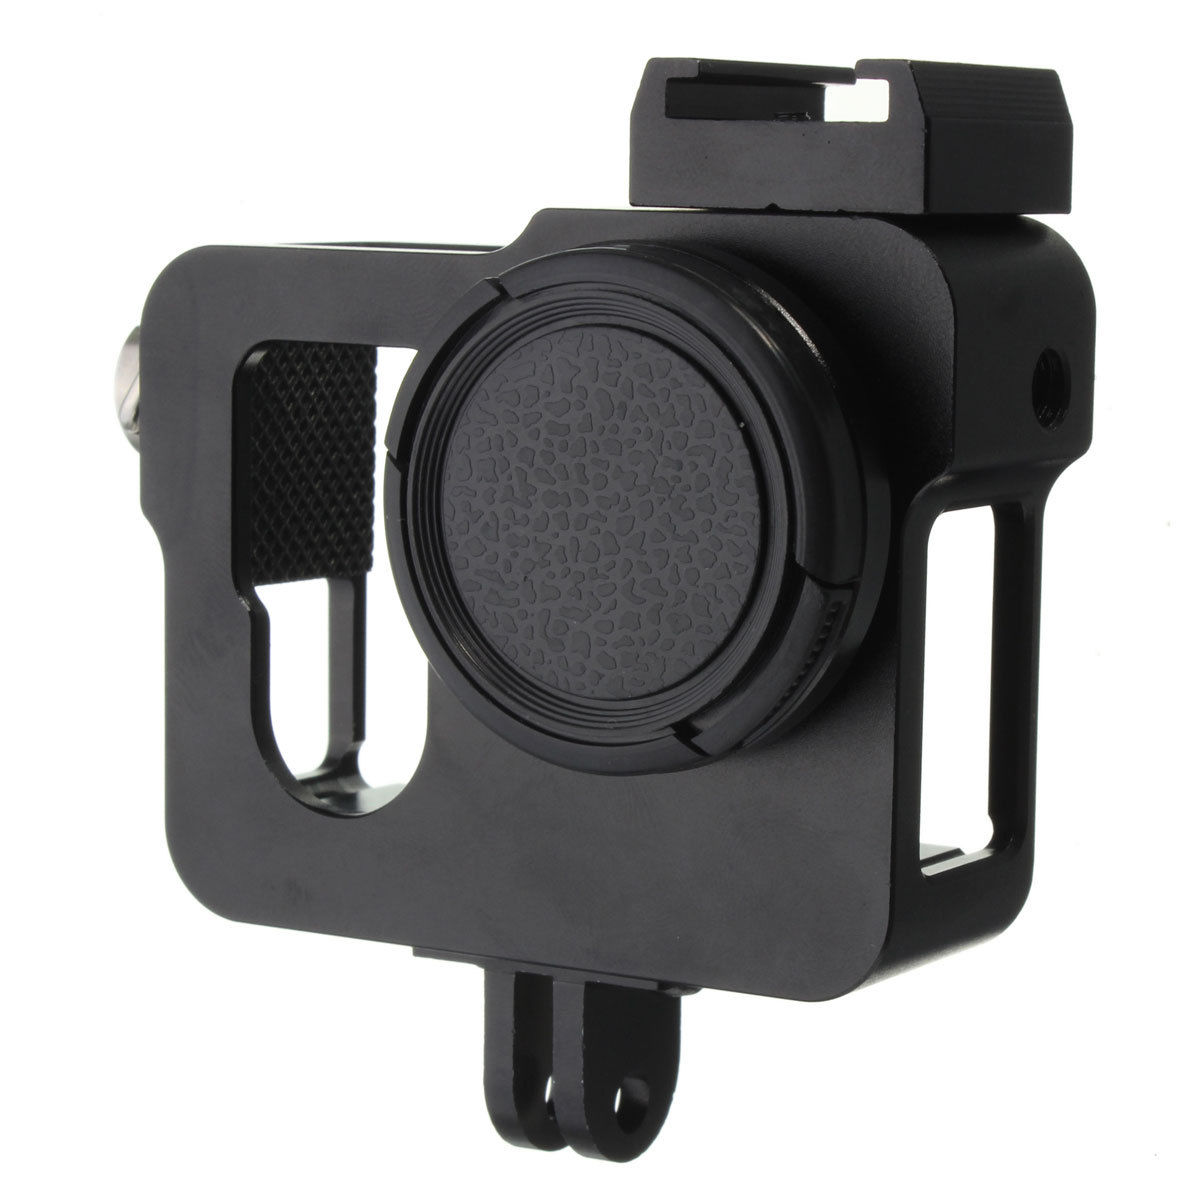 CNC Metal Case for GoPro HERO5 HERO6 HERO7 35MM